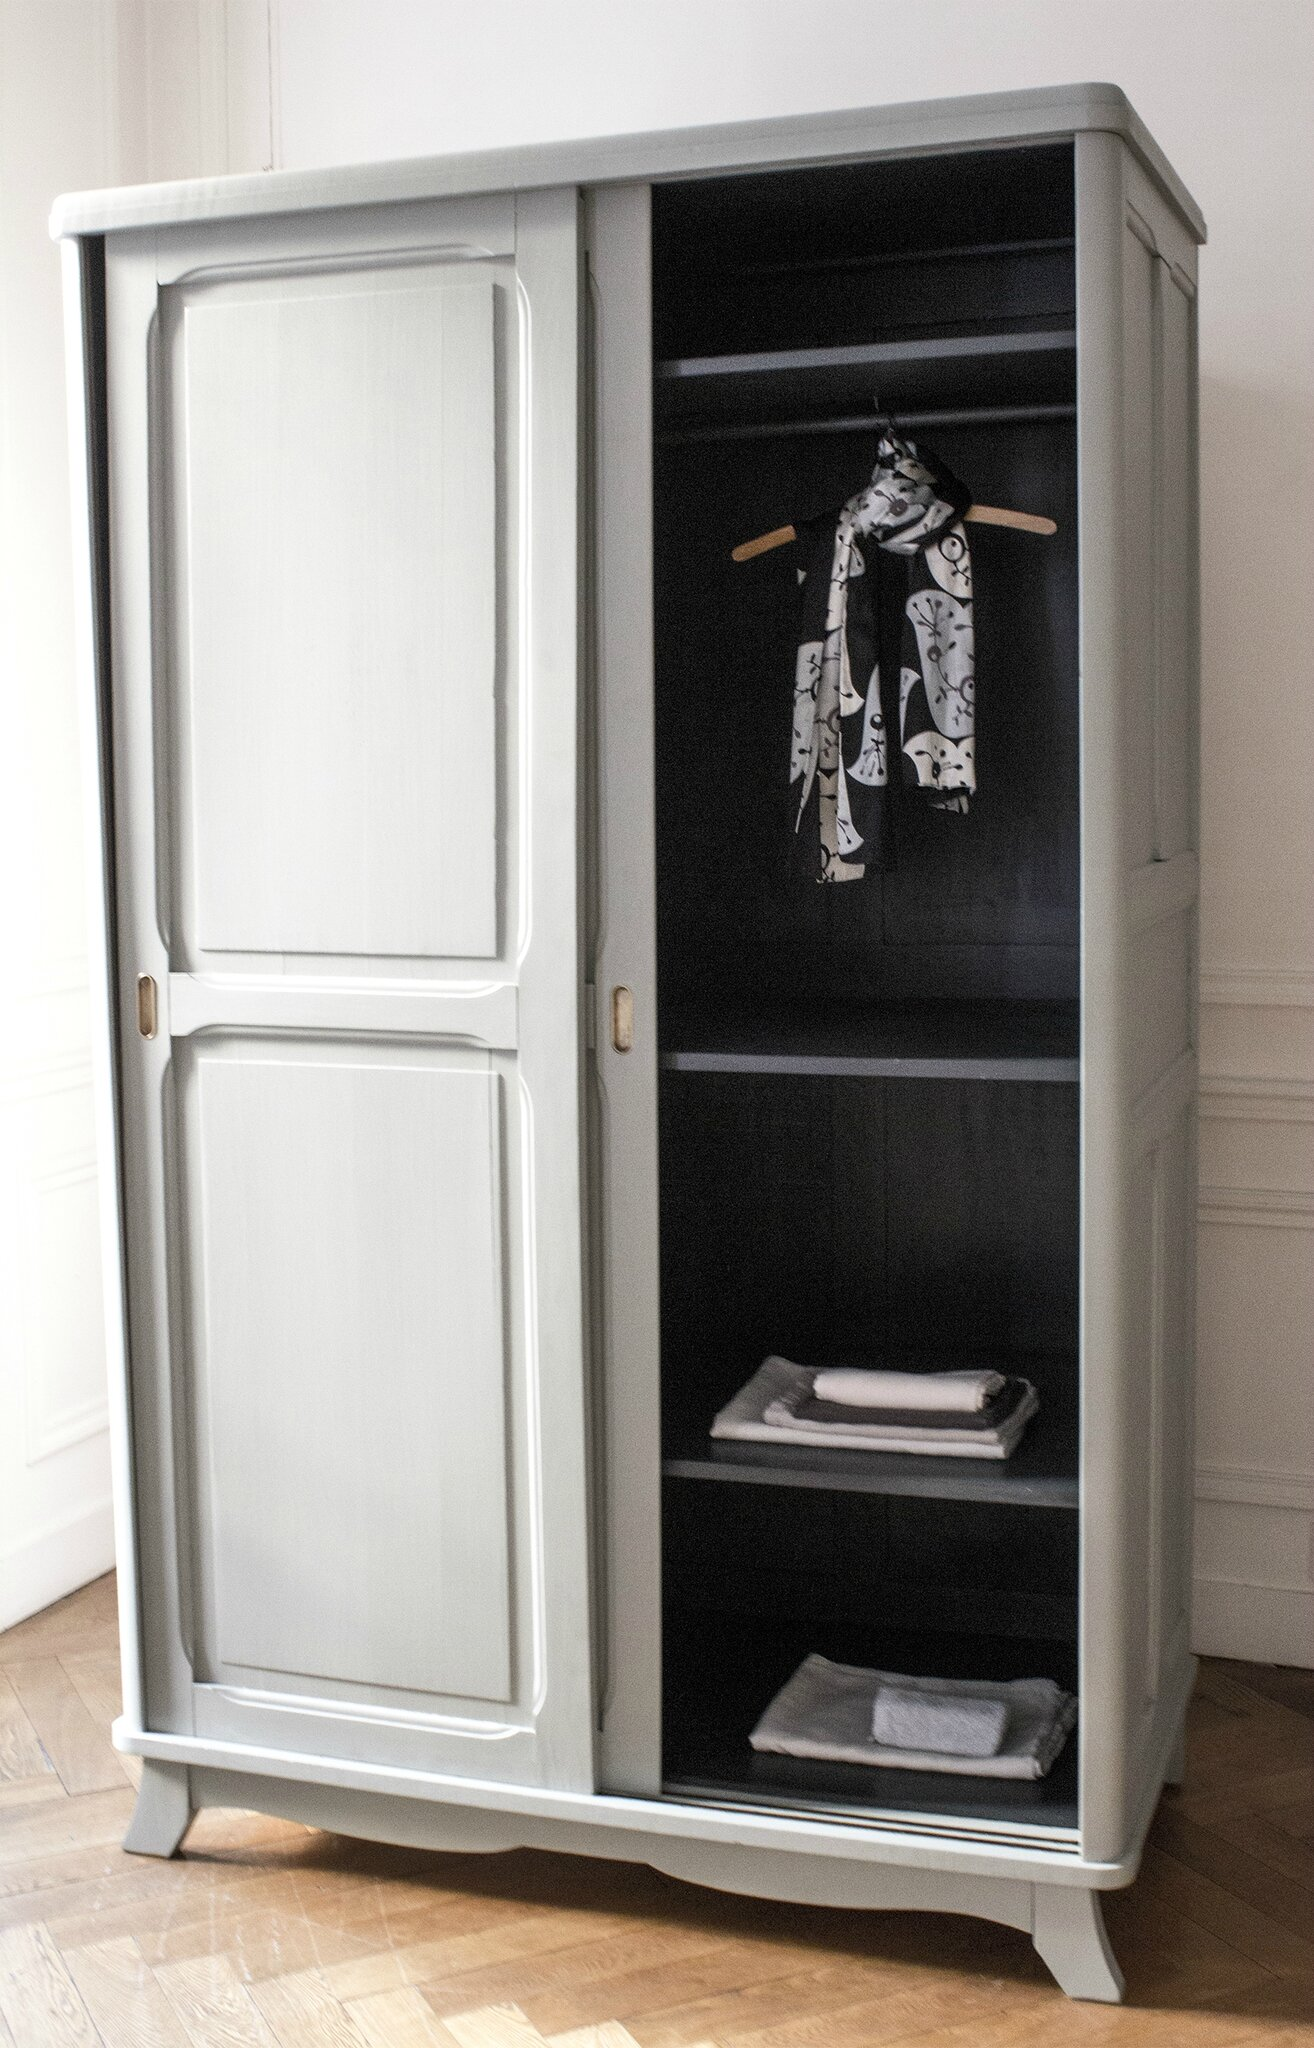 grande armoire porte coulissante armoire porte coulissante pas cher belgique advice for. Black Bedroom Furniture Sets. Home Design Ideas